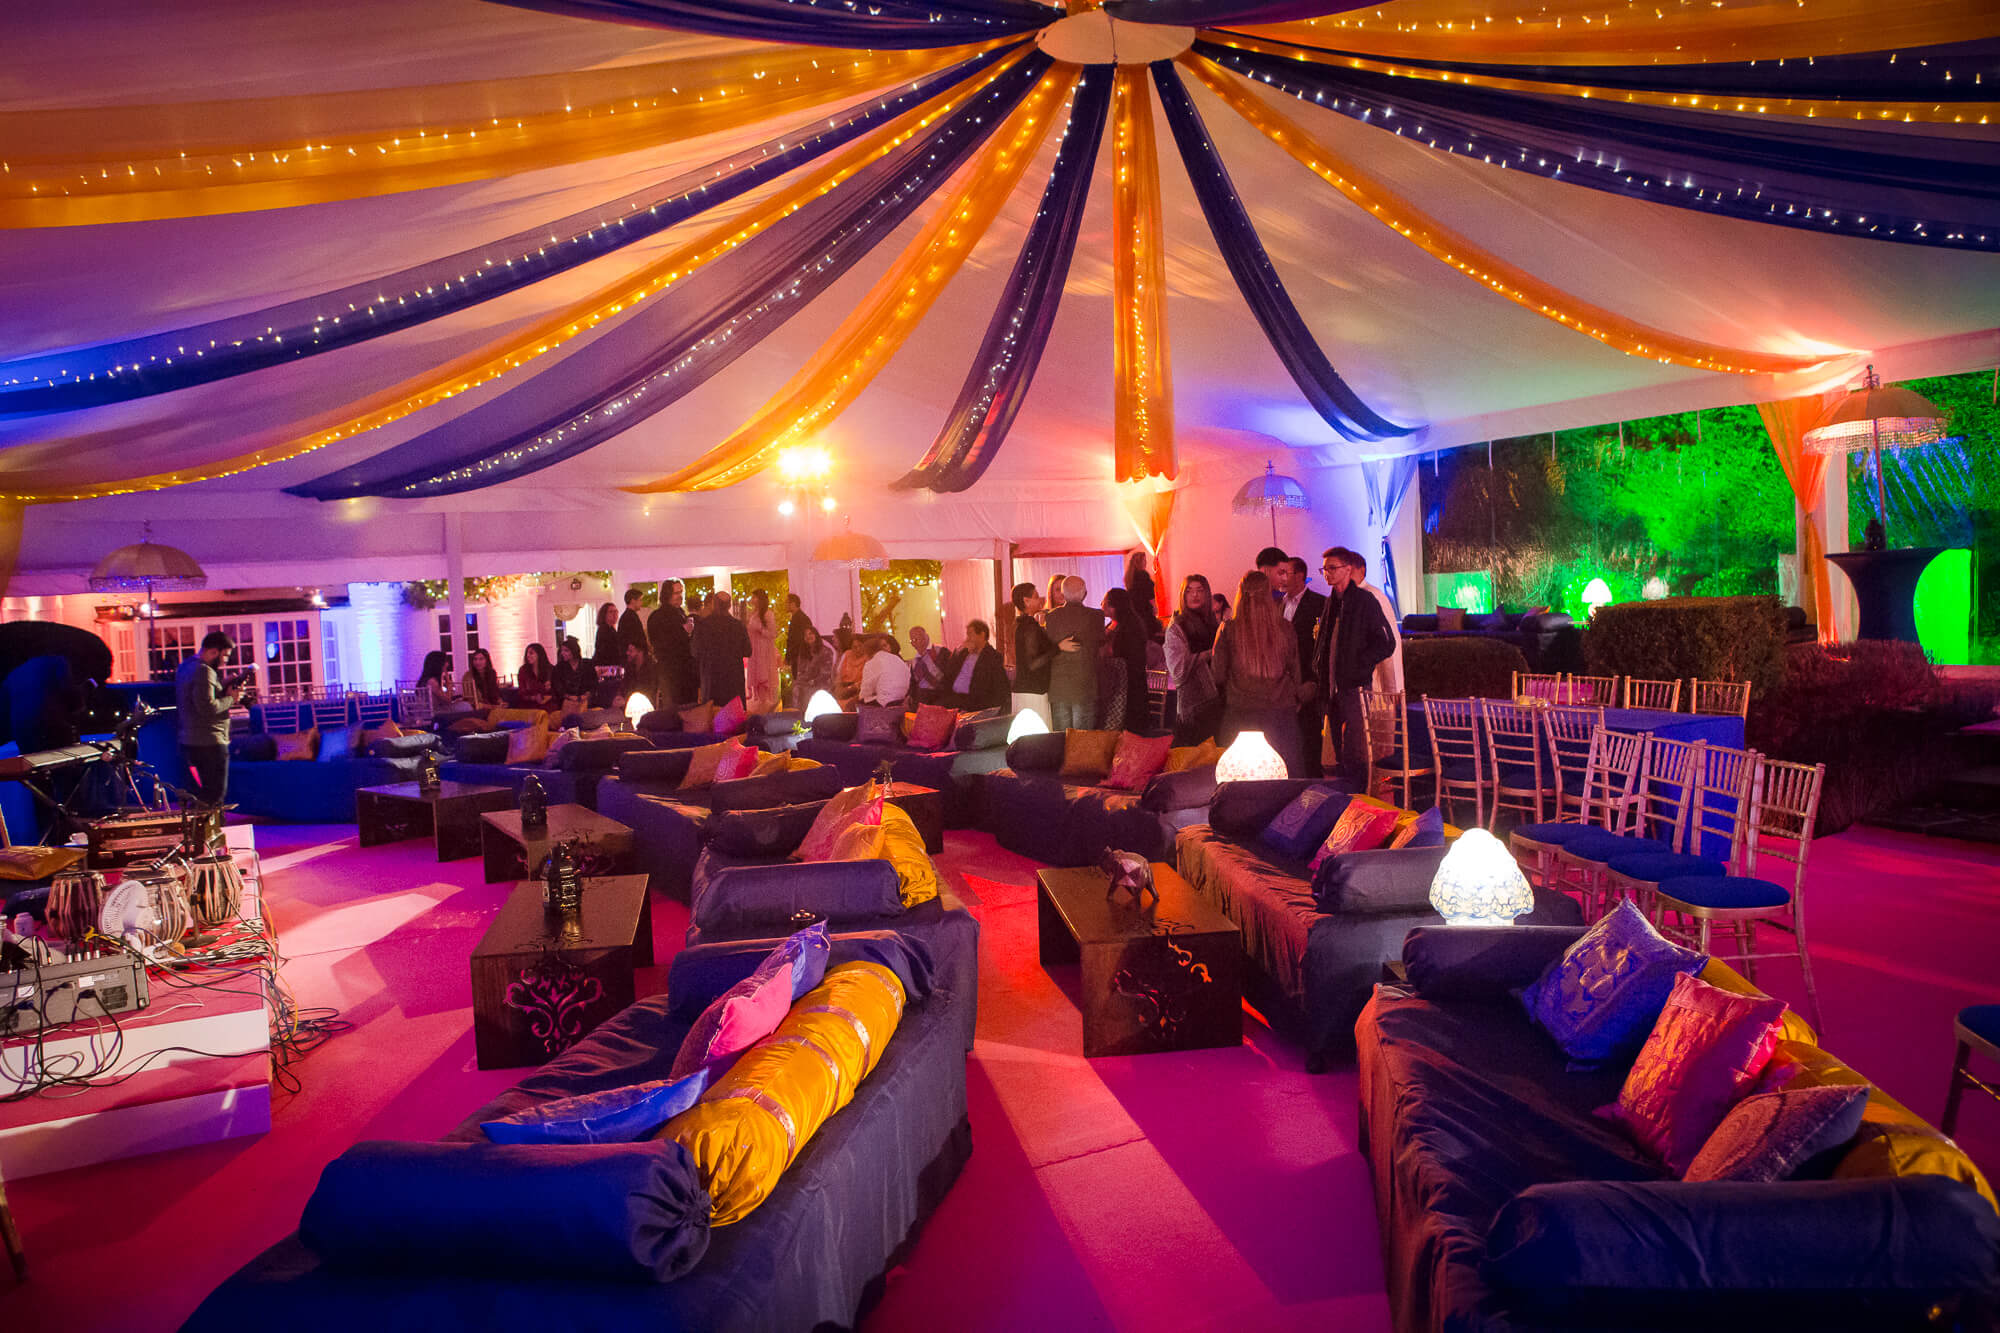 Amazing Mehndi Party Ideas : Mehndi party ideas stunning marquees the